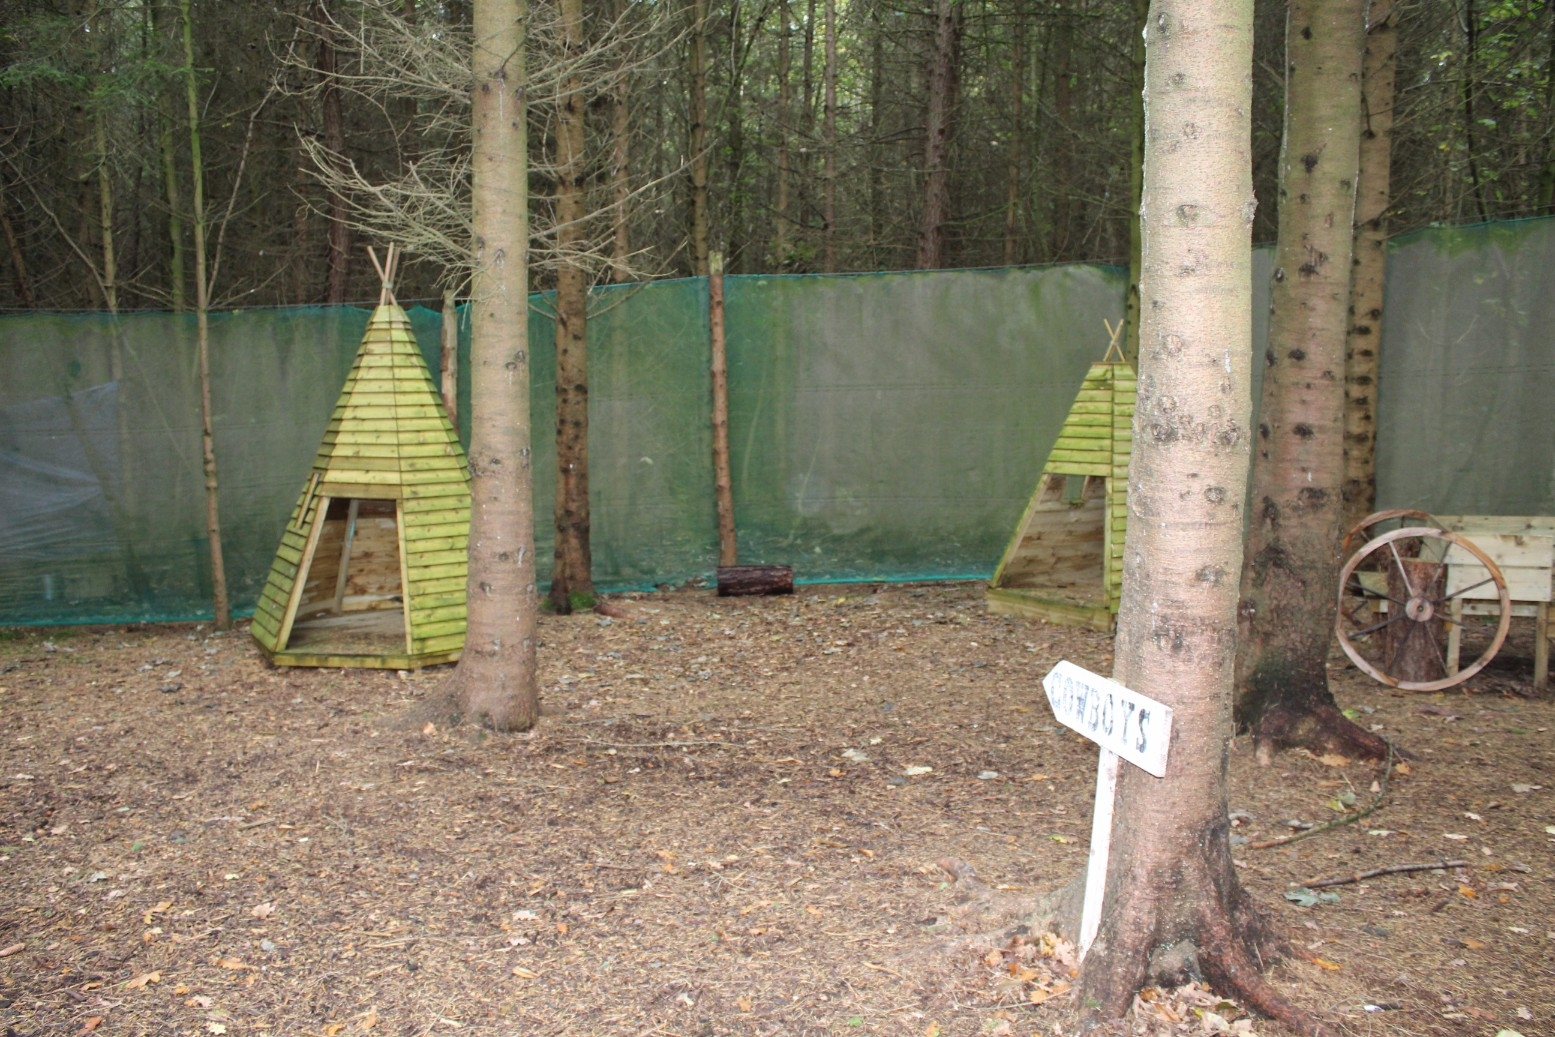 Camp Katur Glamping North Yorkshire Geodome Review (12)